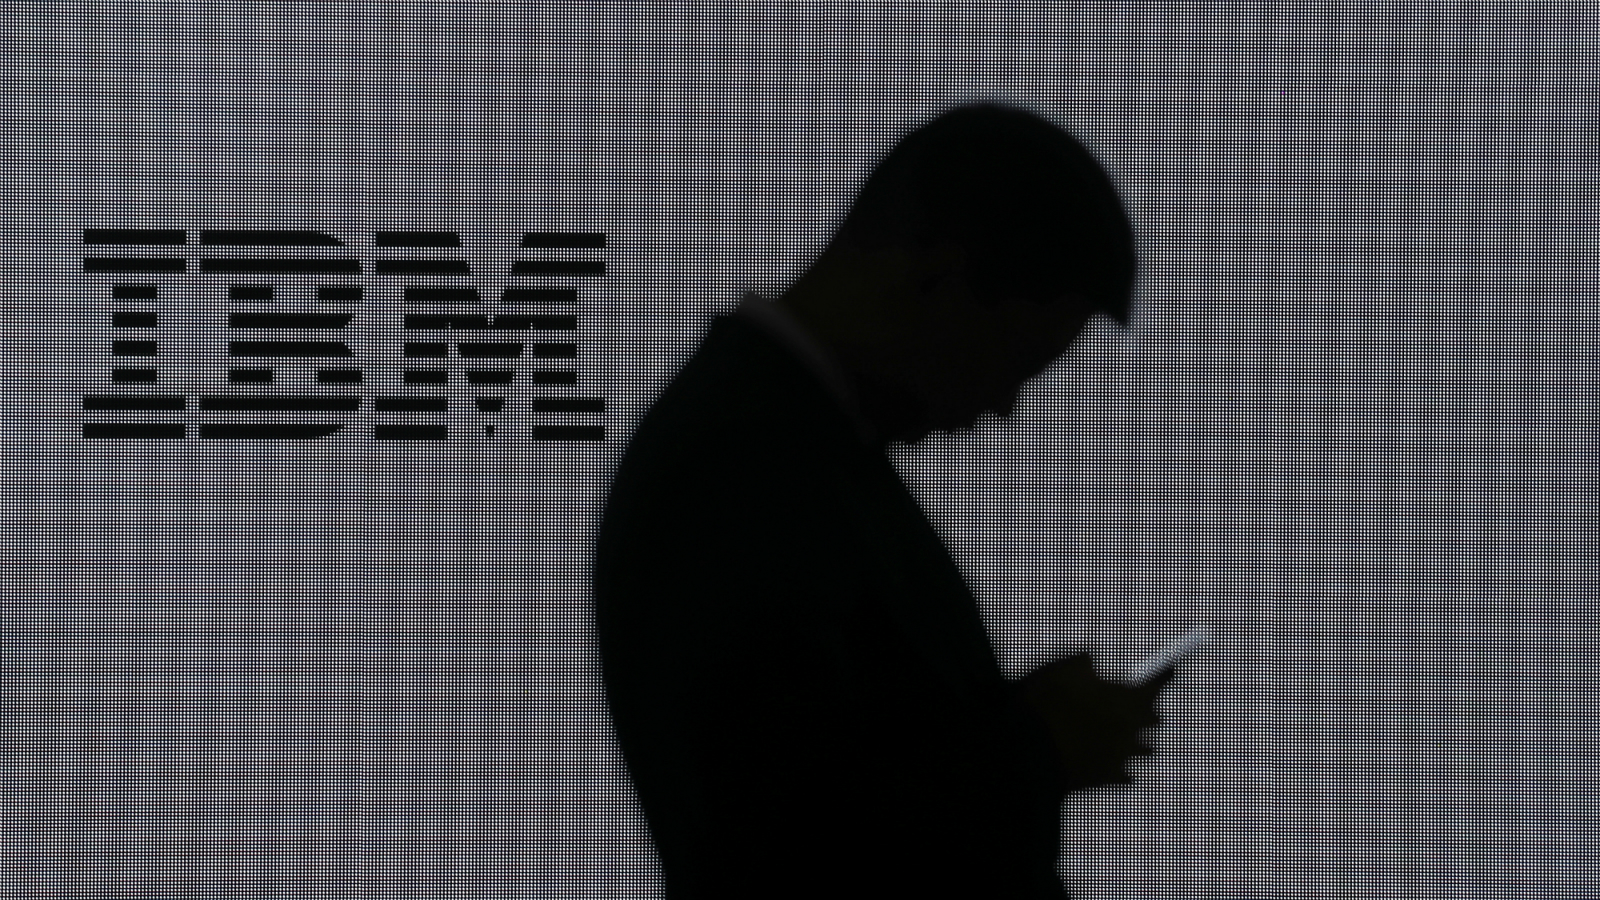 Analysts Watch-List Stock: International Business Machines Corporation (IBM)